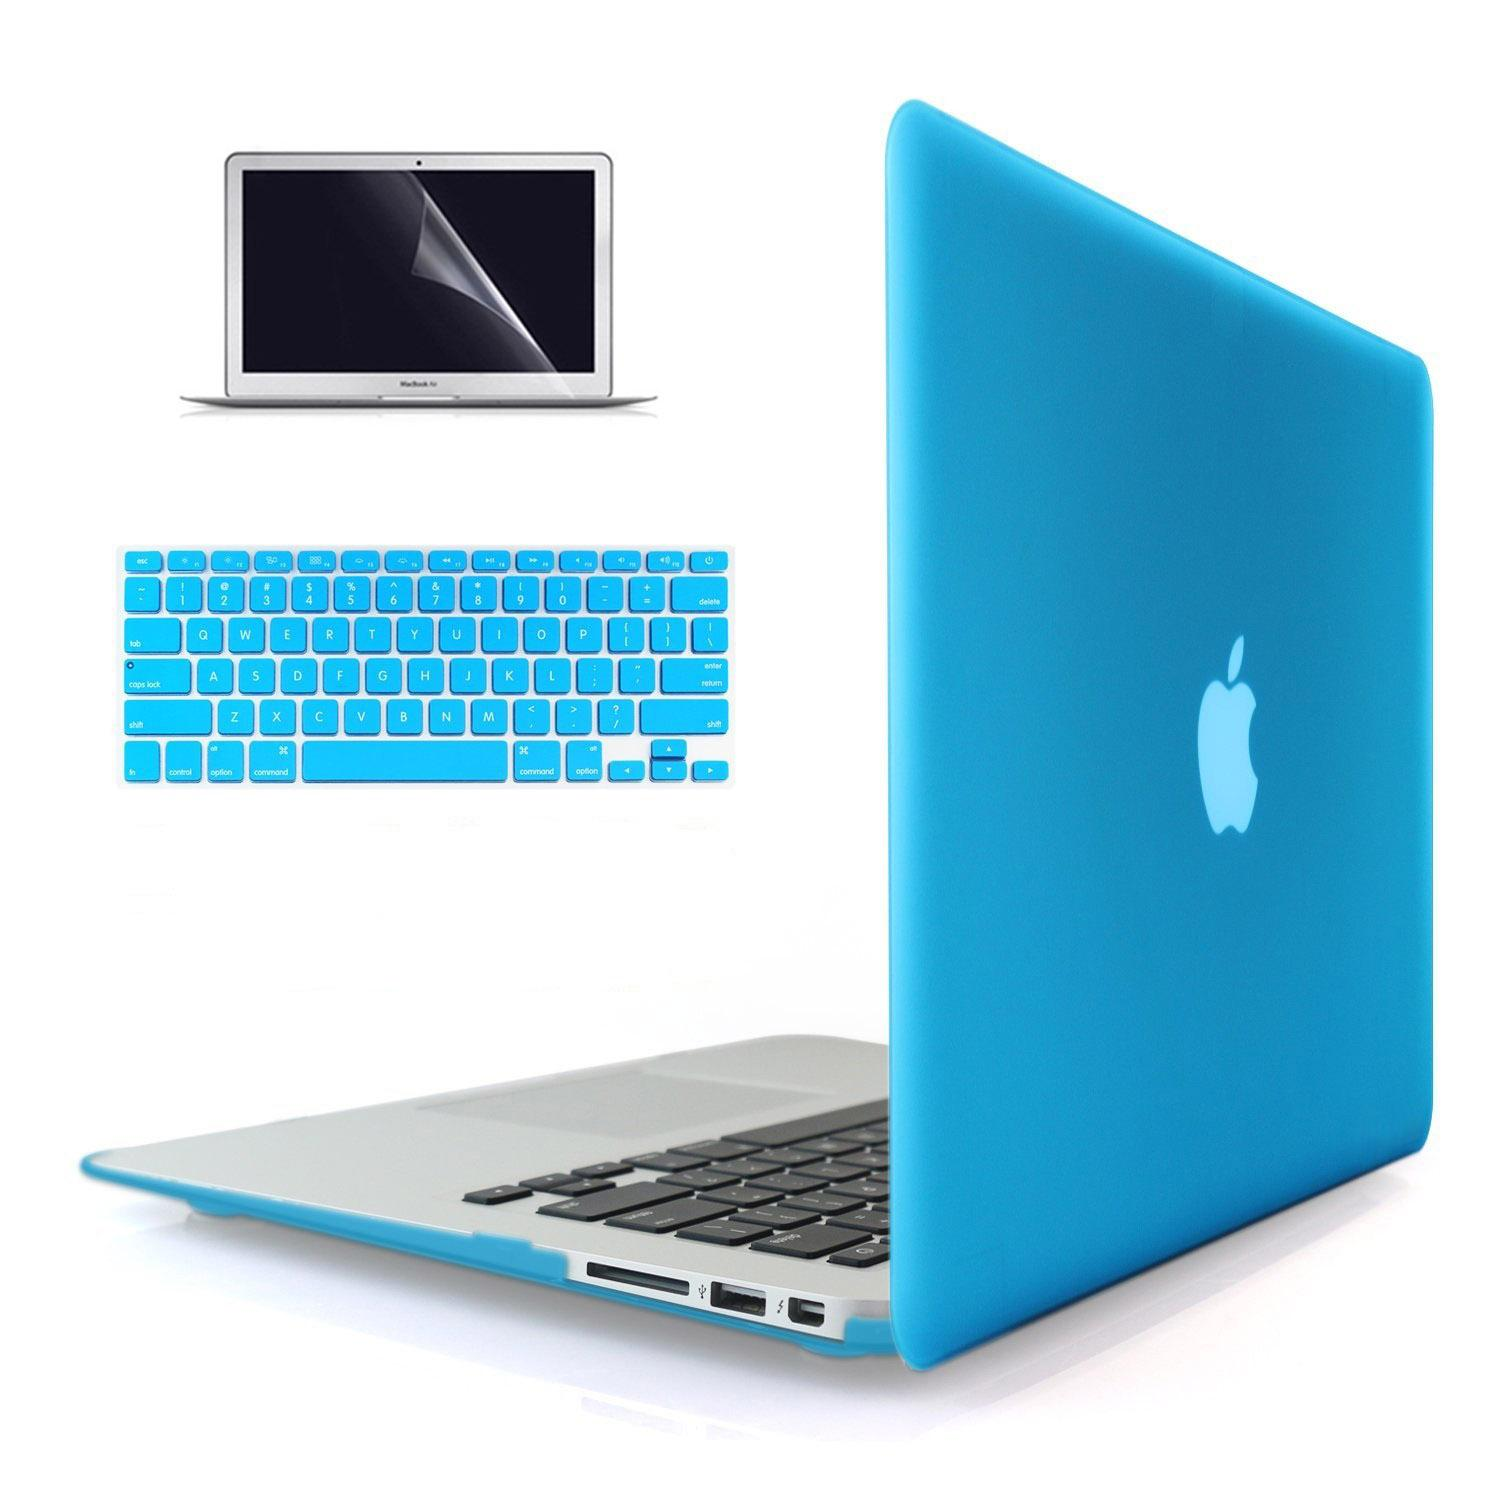 Welink 4 in 1 Matte Apple MacBook Air 13 inch Case / Soft-Touch Plastic Hard Case Cover +High Definition Anti-scratch Screen Protector + Anti-dust Plug + Keyboard Cover for Macbook Air 13 inch [ Models: A1369 / A1466 ] ( Sky Blue)